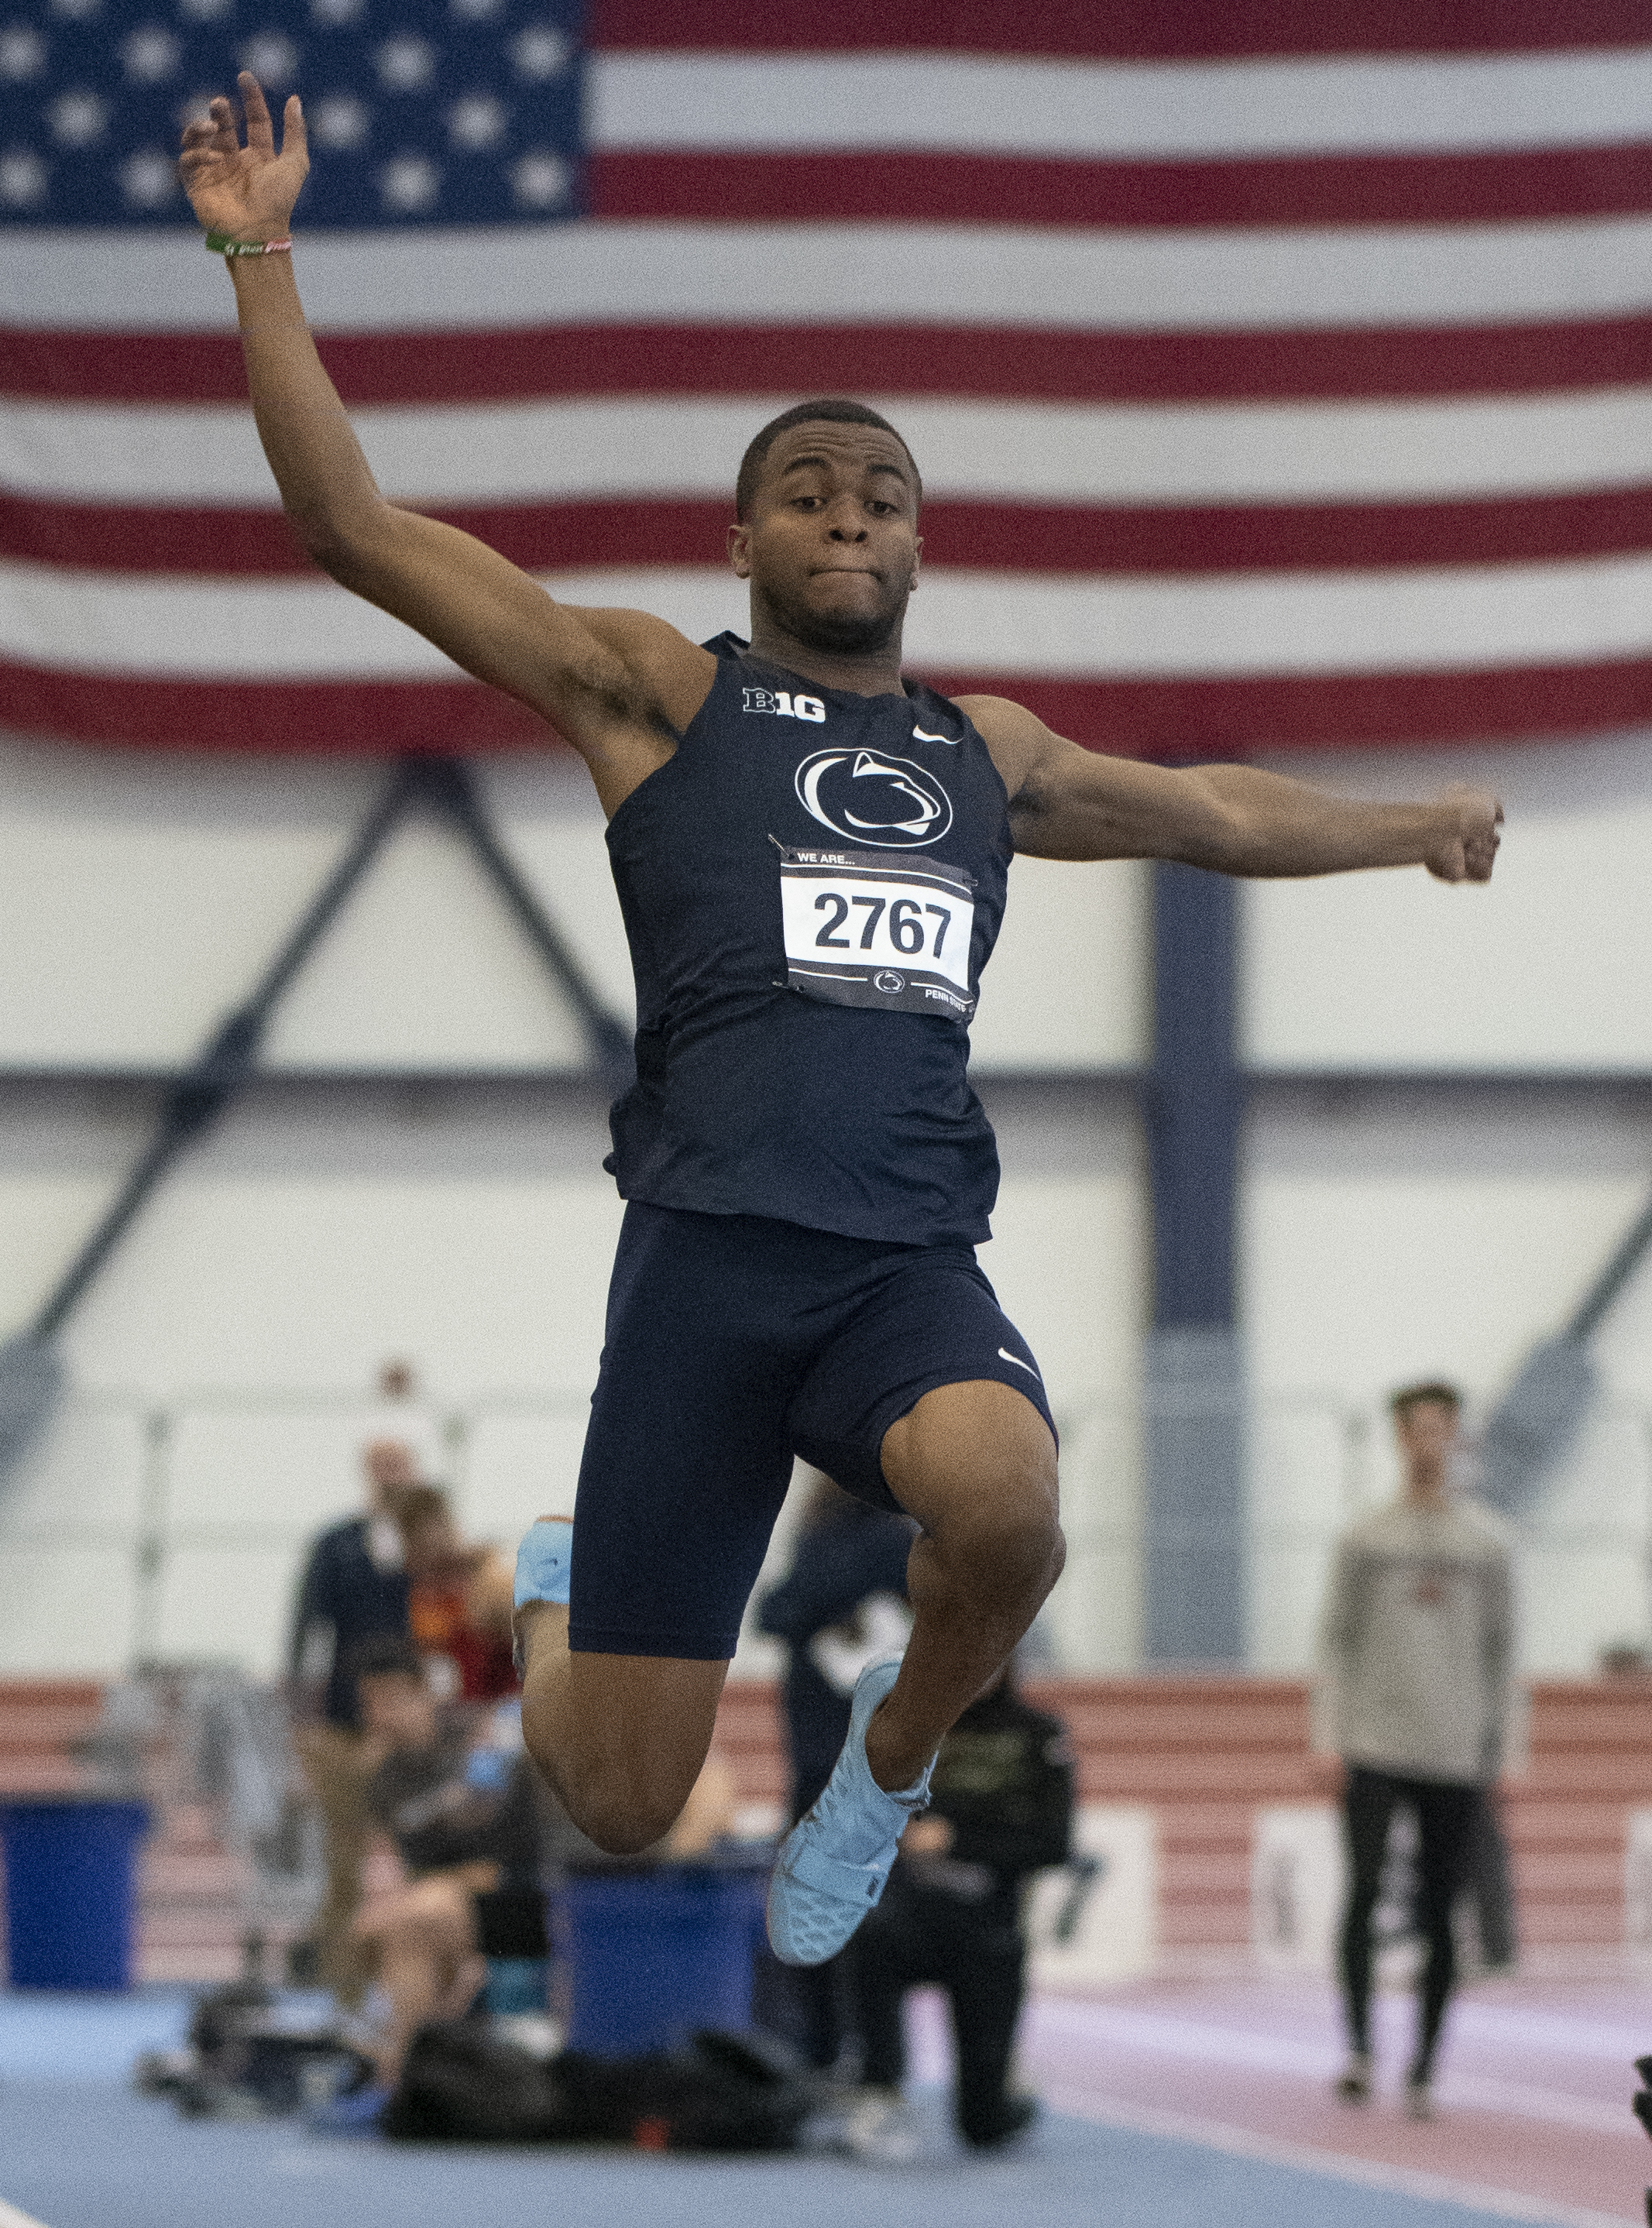 Long jumper Will Henderson jumps during the Nittany Lion Challenge at the Horace Ashenfelter III Indoor Track on Saturday, Jan. 12, 2019. - Photo by: Noah Riffe